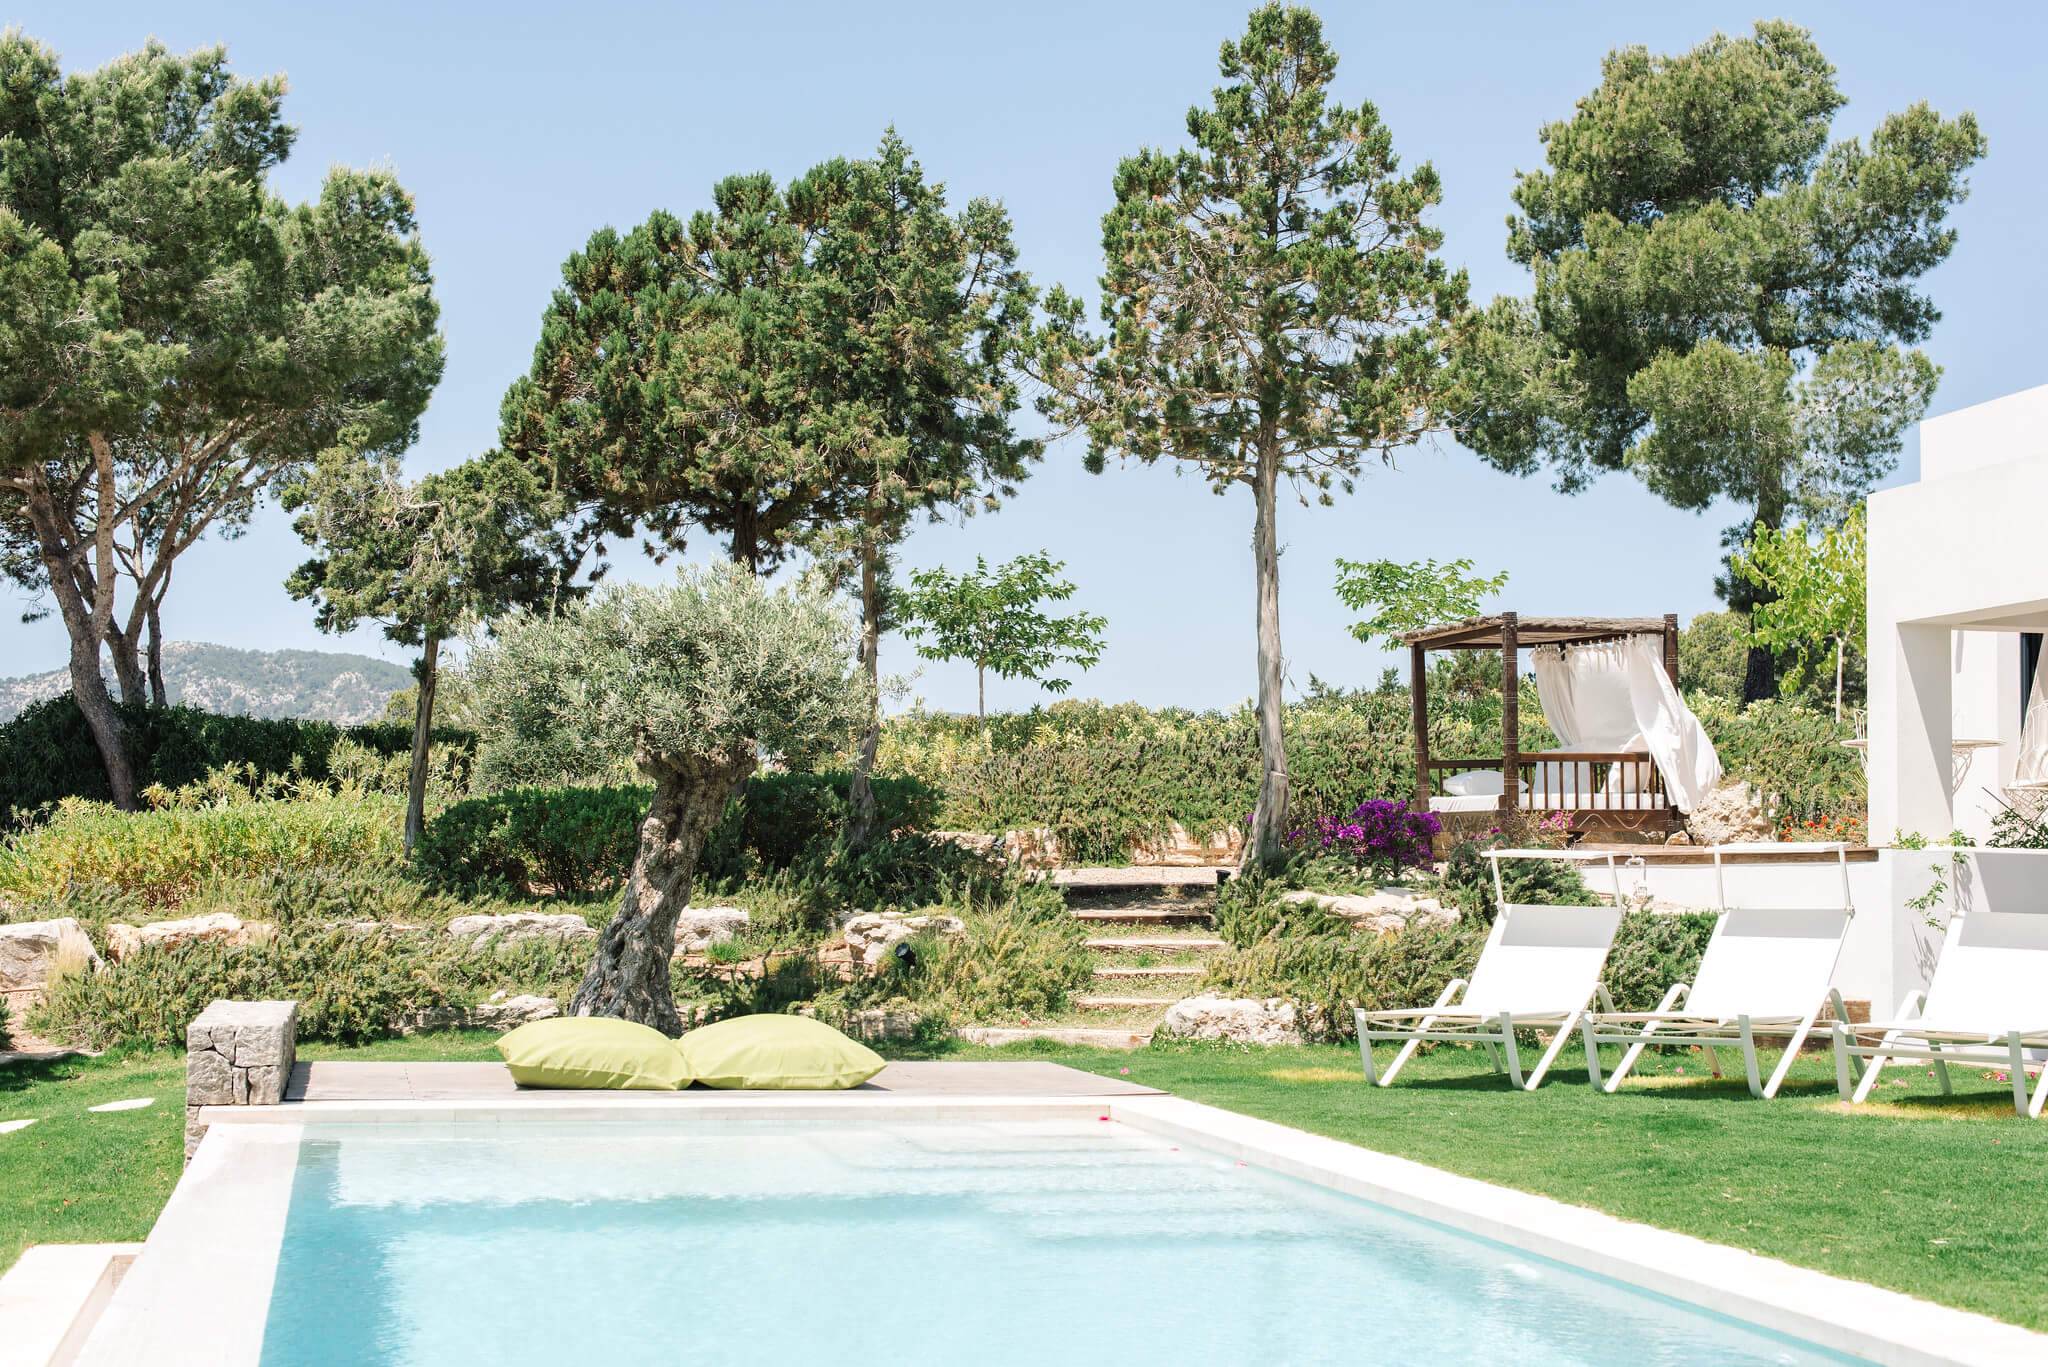 https://www.white-ibiza.com/wp-content/uploads/2020/06/white-ibiza-villas-can-jondal-exterior-pool-from-chillout.jpg